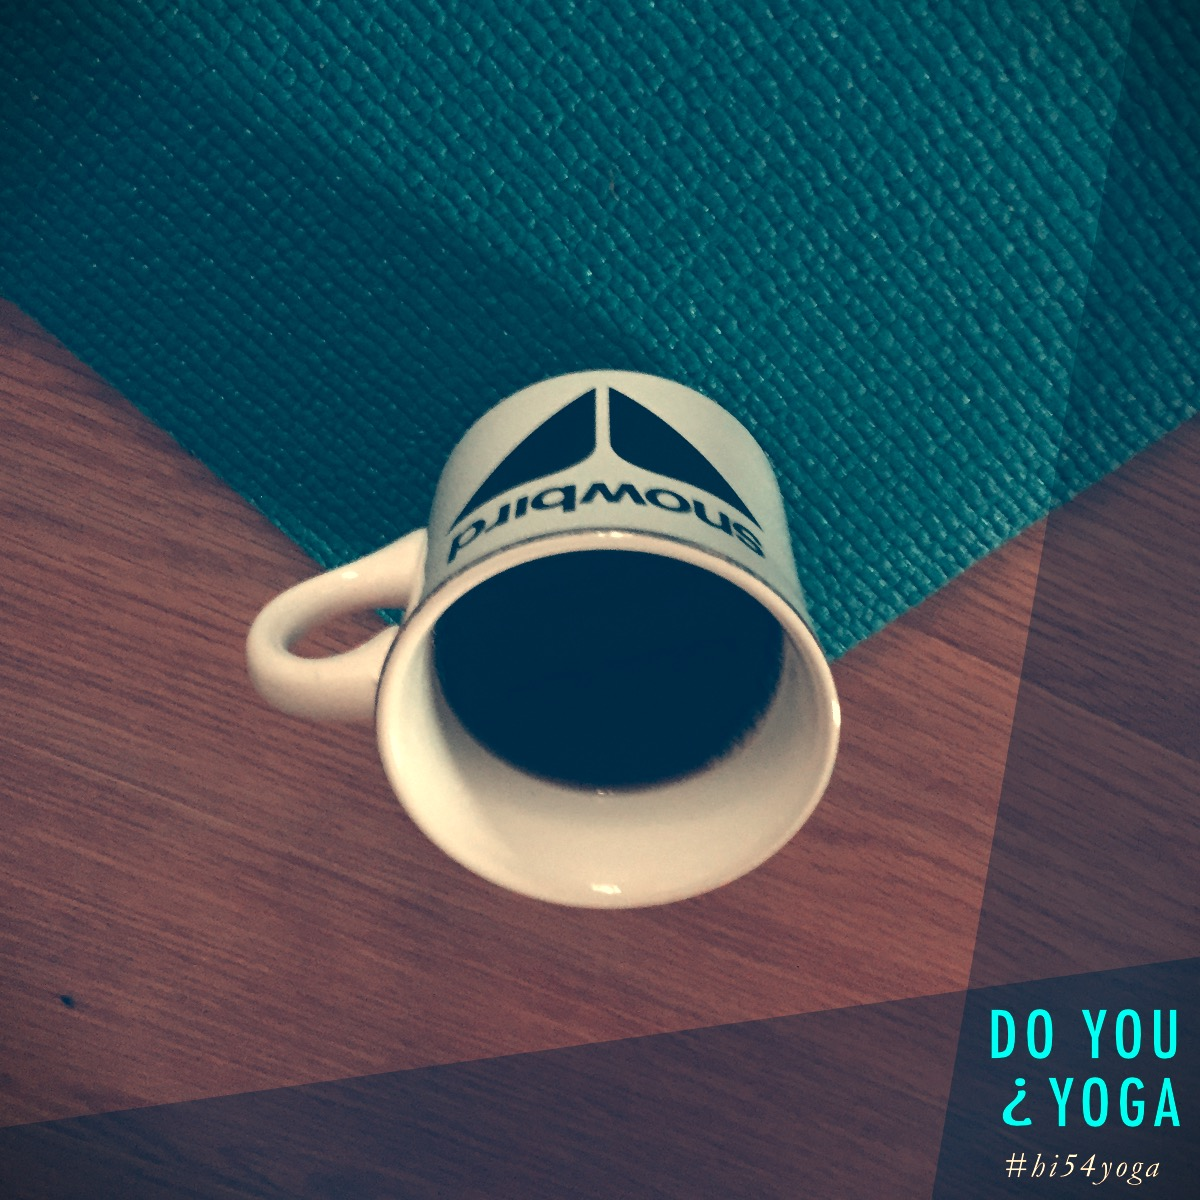 Words & Playlist by HI54LOFI - There is only so much 'Getting Started w/ Yoga' advice someone who is only 3 months in to a practice can give. And this is all of that advice + a yoga playlist. [originally written in Feb 2018]